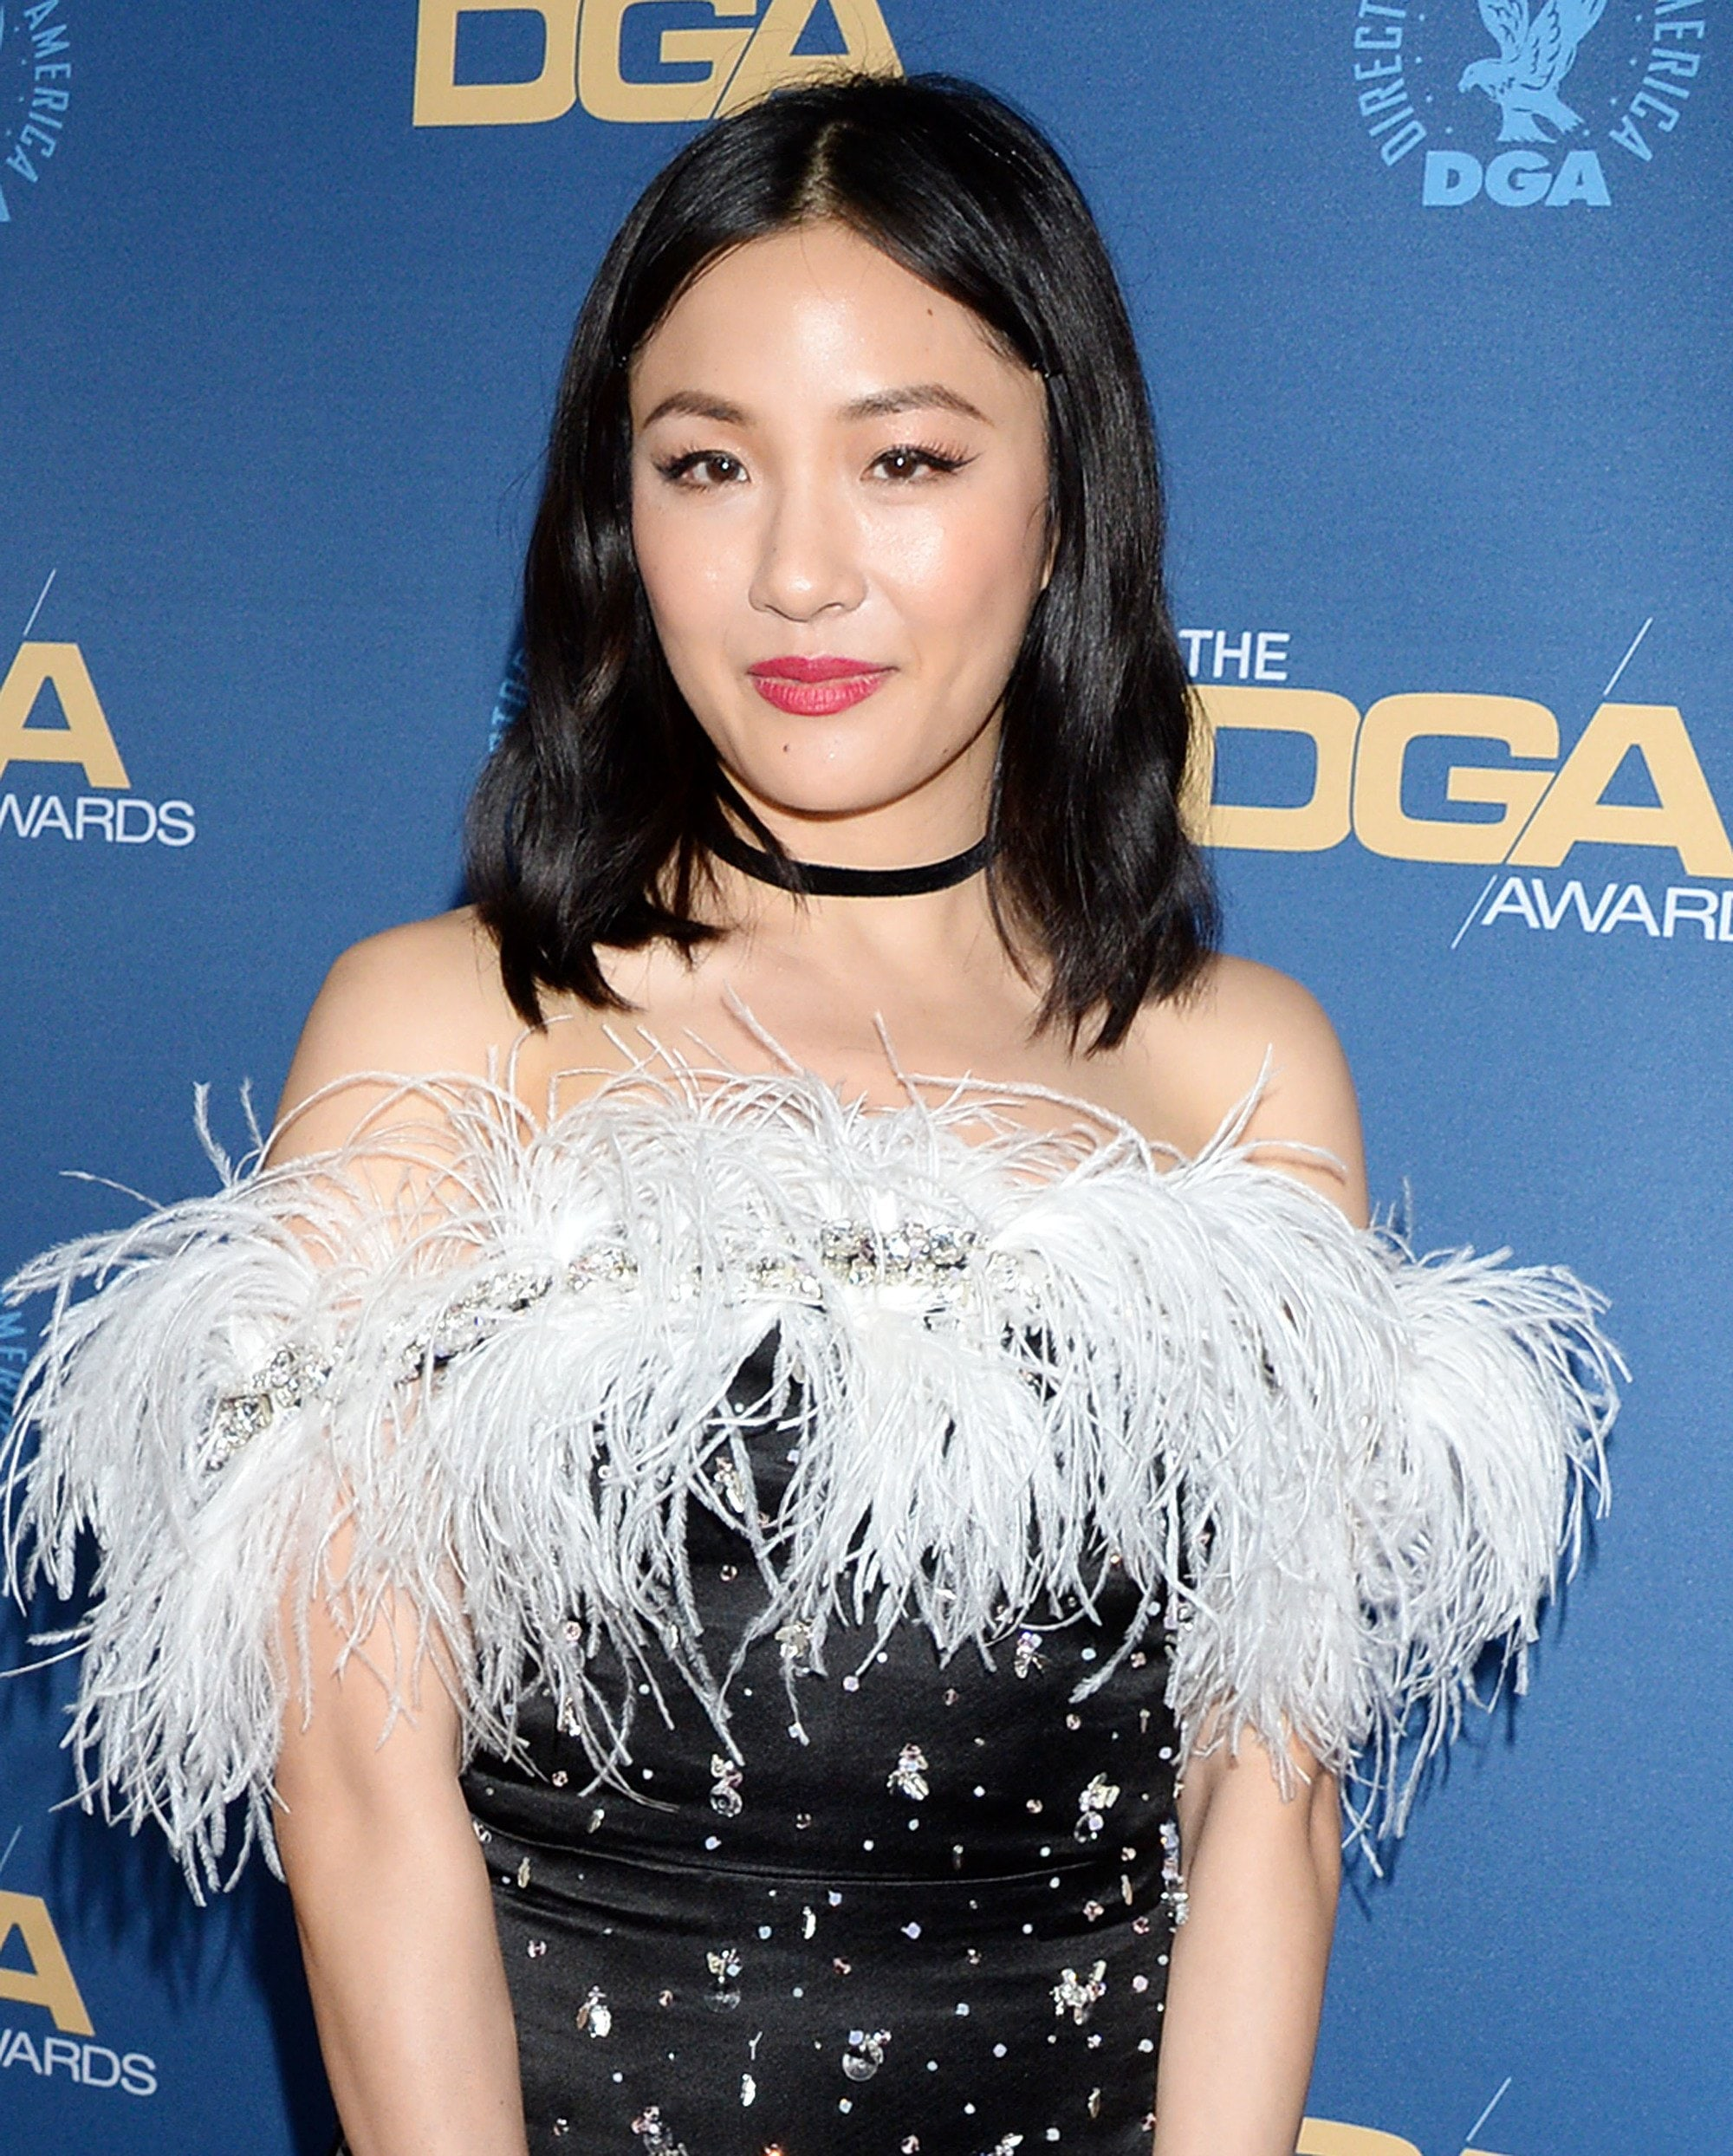 Celebrity Valentine's Day Hair: Constance Wu on the red carpet shoulder-length loose waves, wearing a fluffy black dress on the red carpet